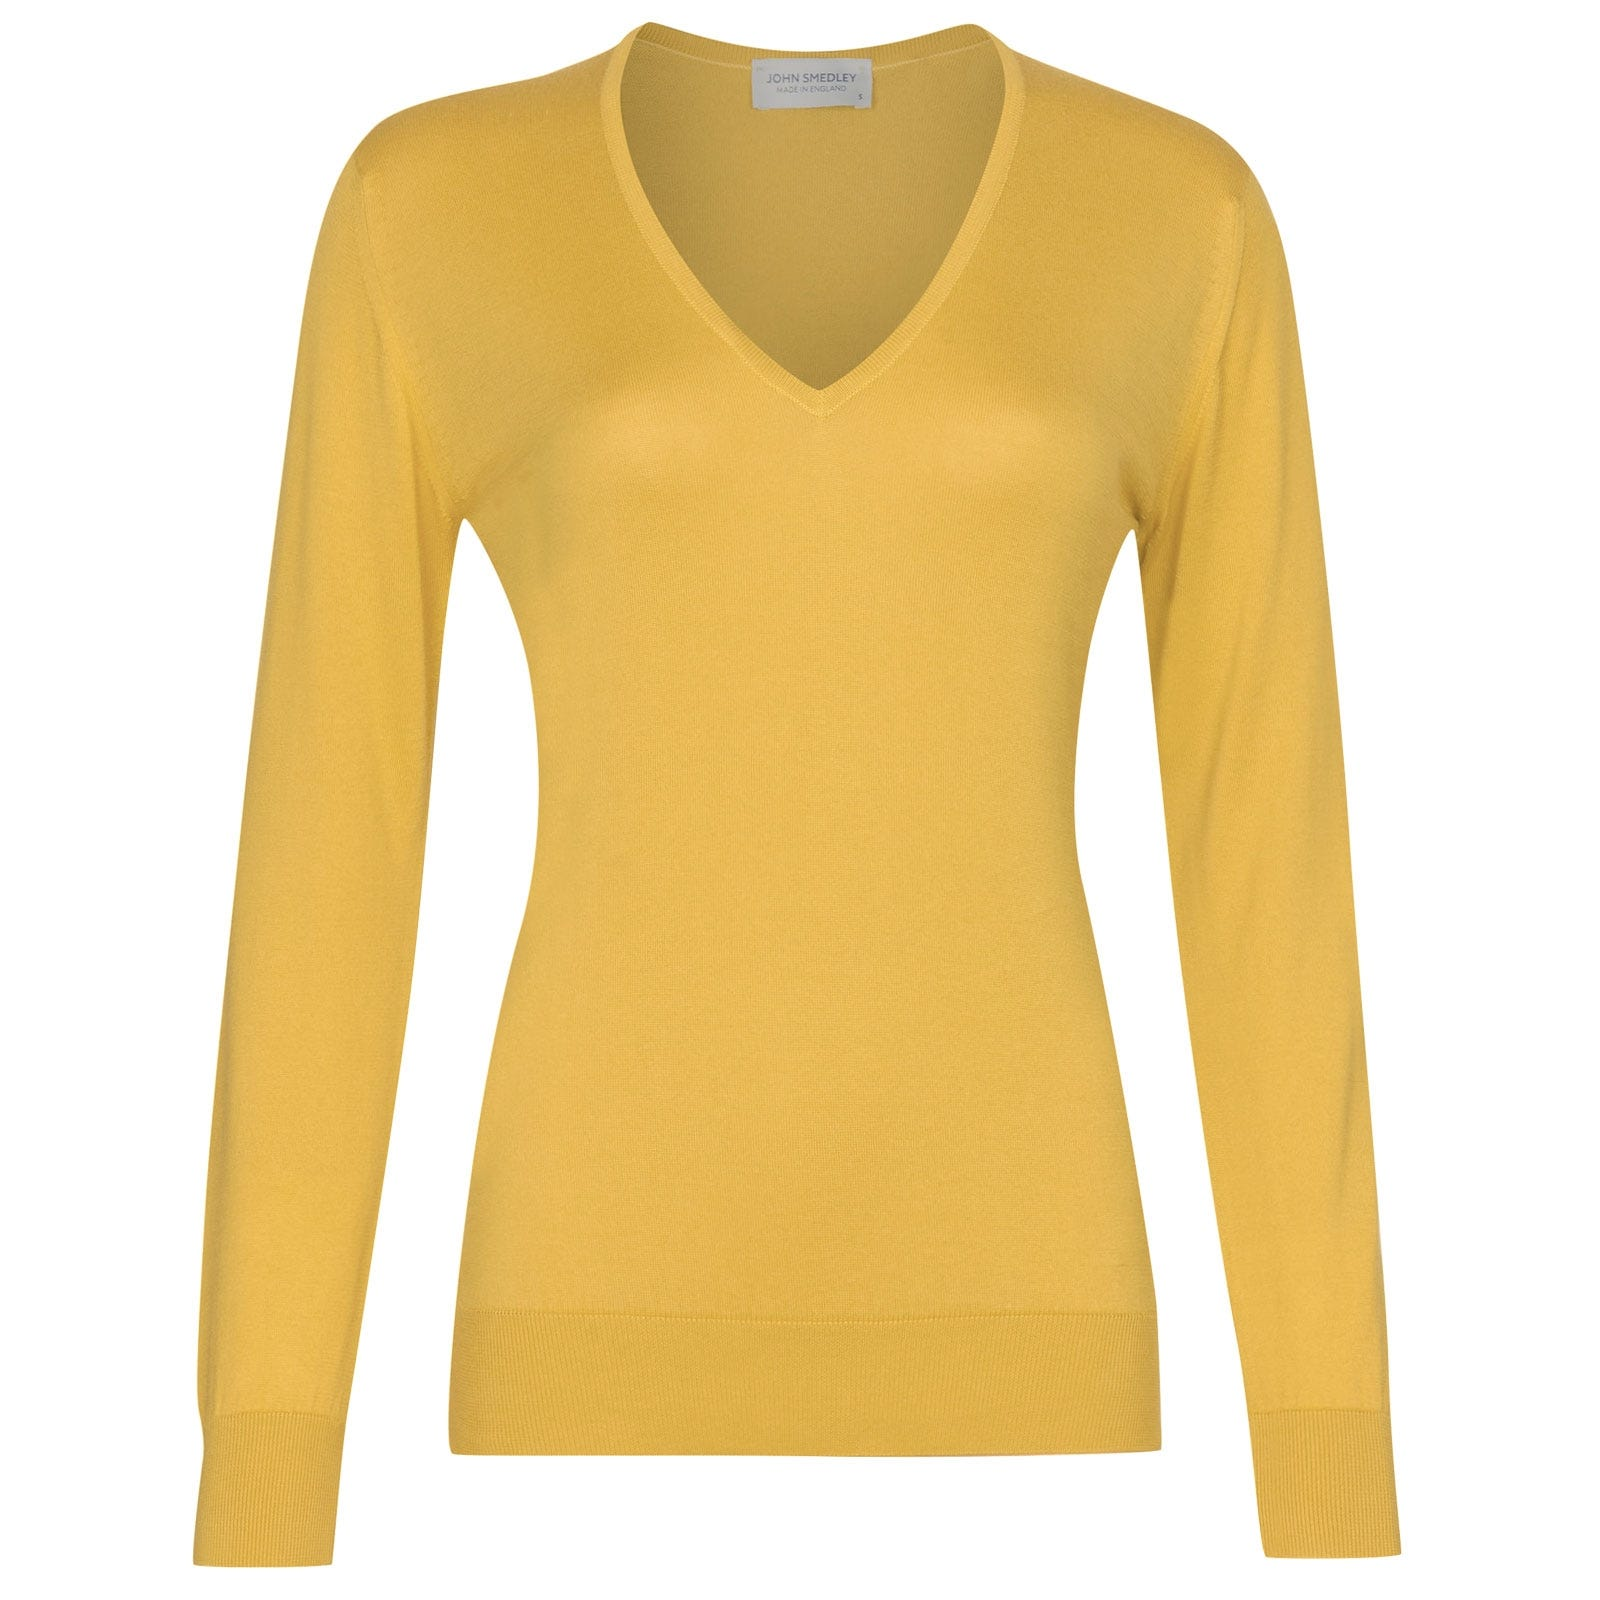 John Smedley Putney in Yellow Bloom Sweater-XLG